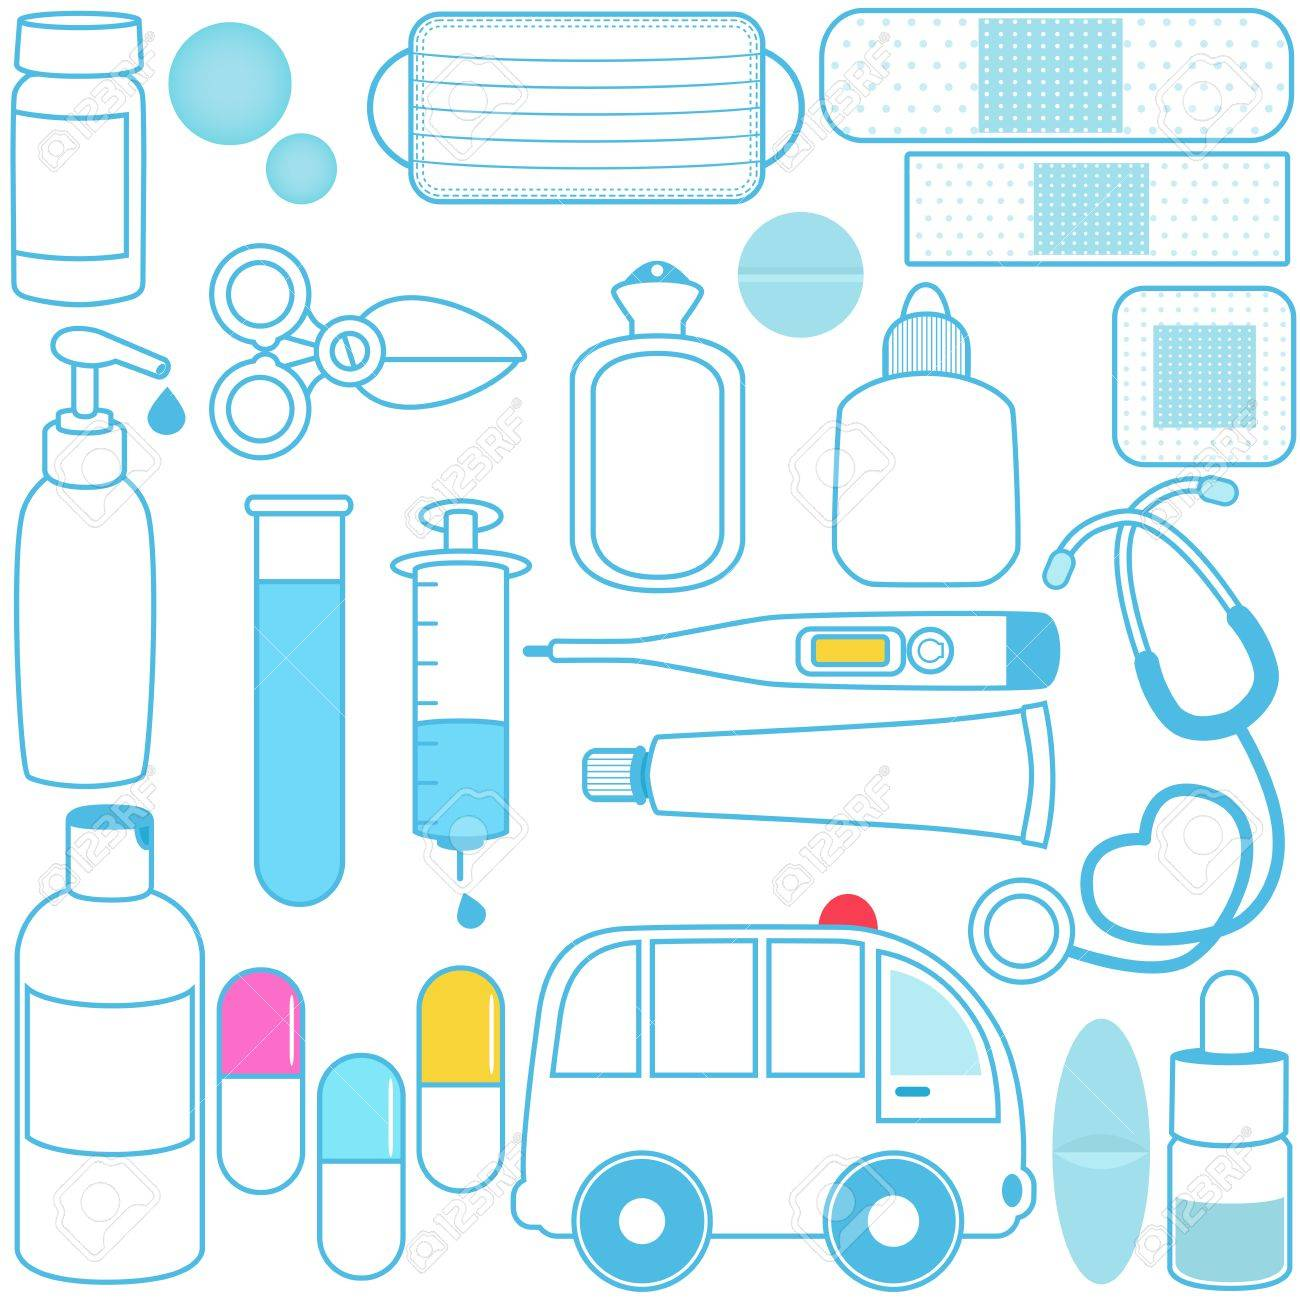 Cute vector icons: Medicines, Pills, Medical Equipments, Blue outline Stock Vector - 12184859